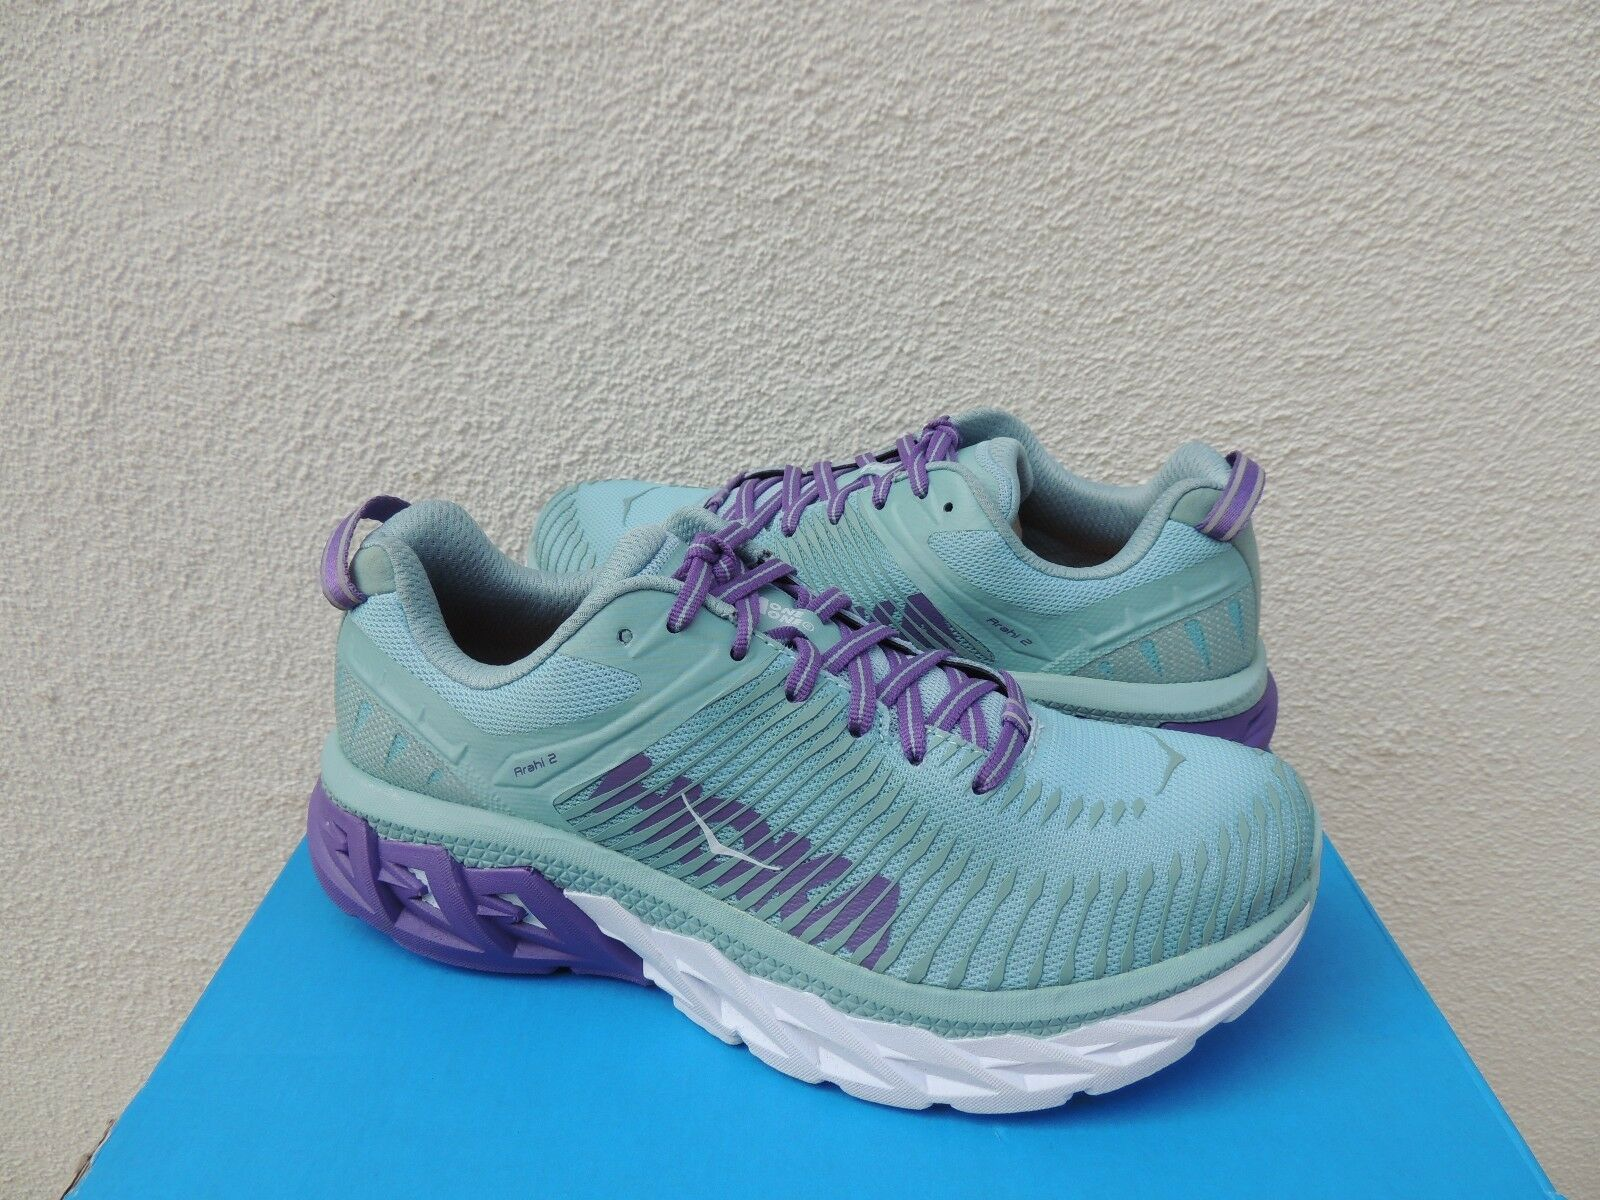 HOKA ONE ONE ARAHI 2 AQUIFER SEA ANGEL RUNNING SHOES, Donna US 7/ EUR 38 2/3 NEW